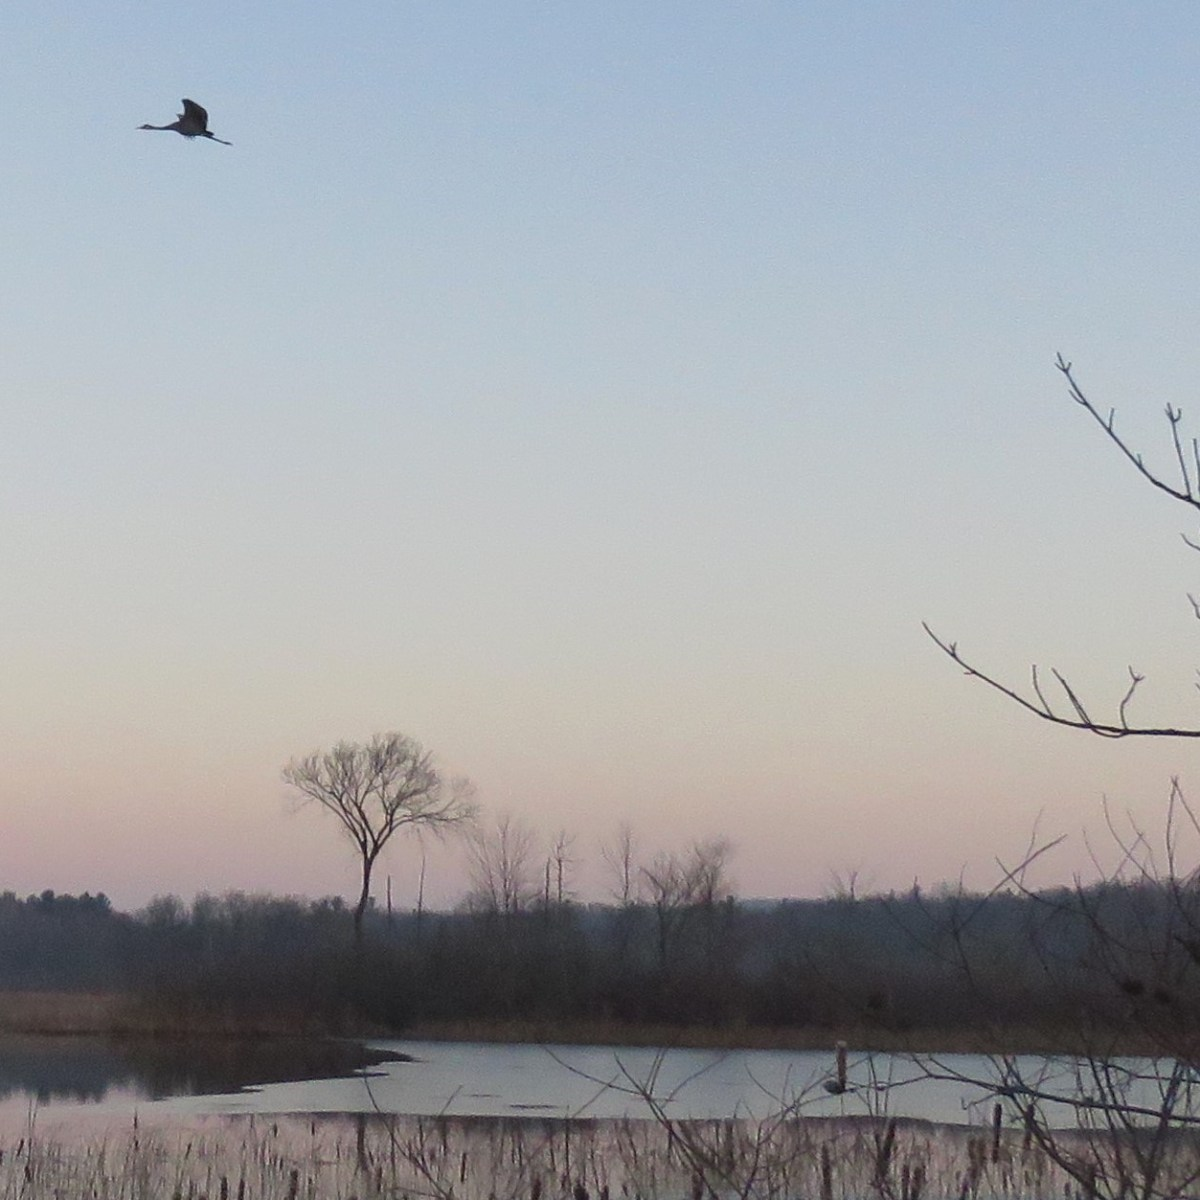 A Sandhill Crane flies high in the sky over a lake at dawn